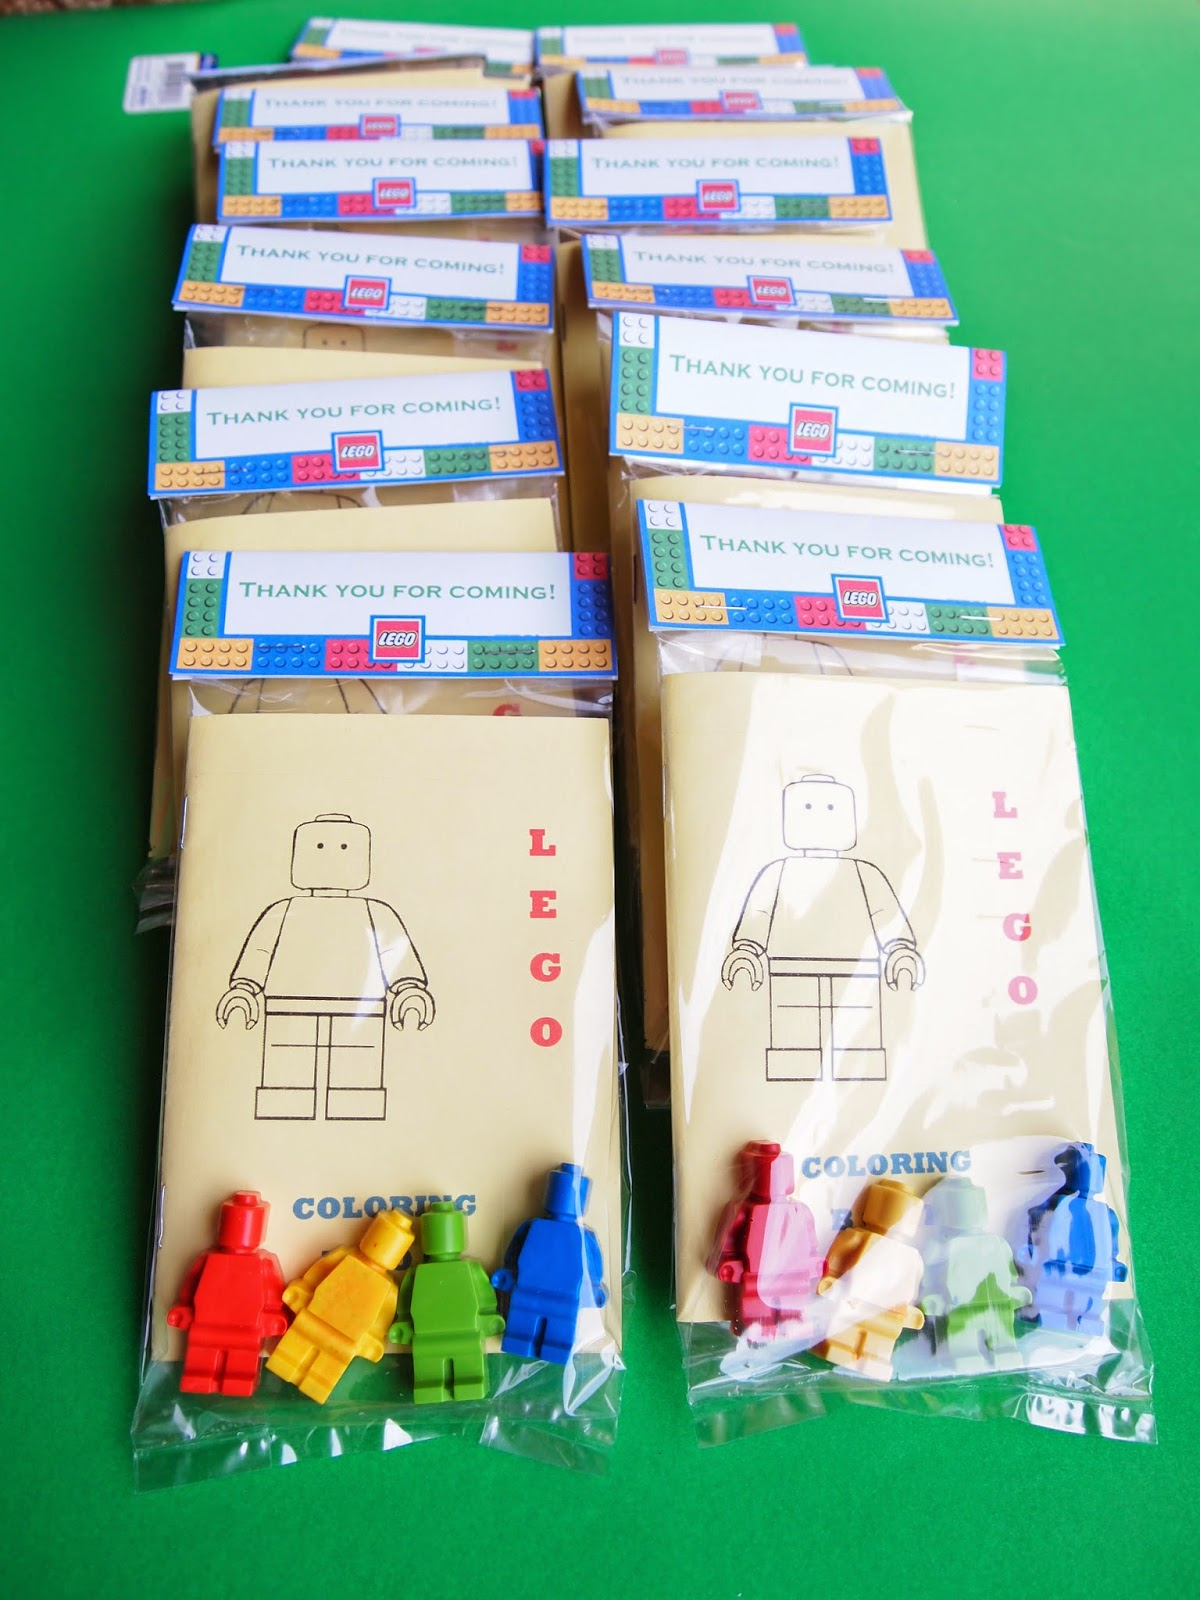 at the end of the party we gave each guest a lego favor bag based on this each bag consisted of lego mini figure crayons and a mini lego coloring book - Diy Coloring Book